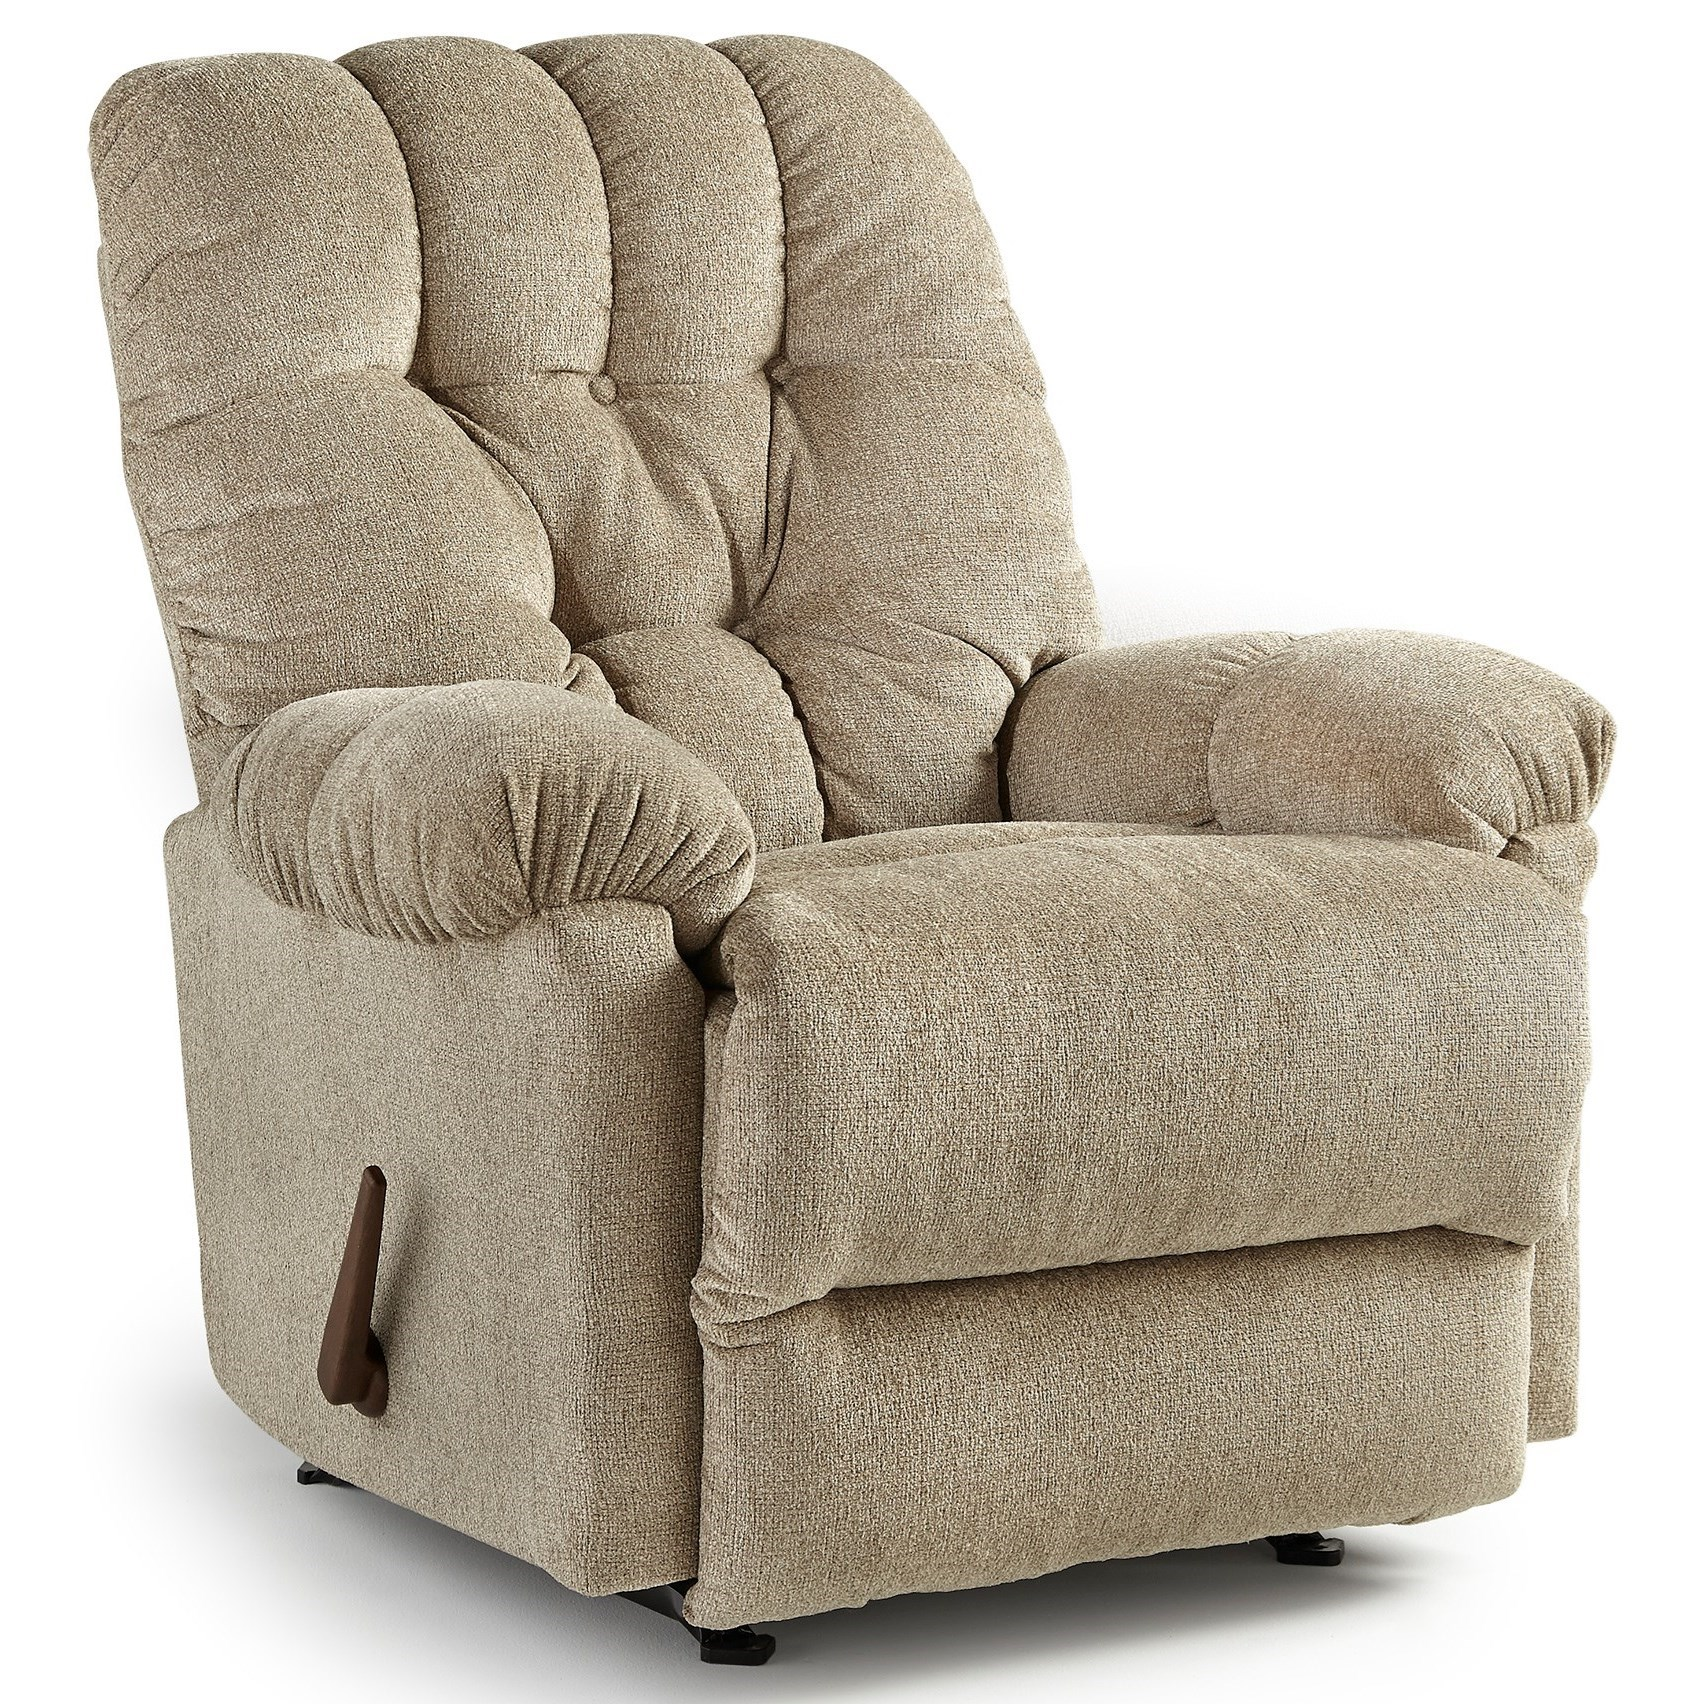 Raider Raider Power Wallhugger Recliner by Best Home Furnishings at Coconis Furniture & Mattress 1st